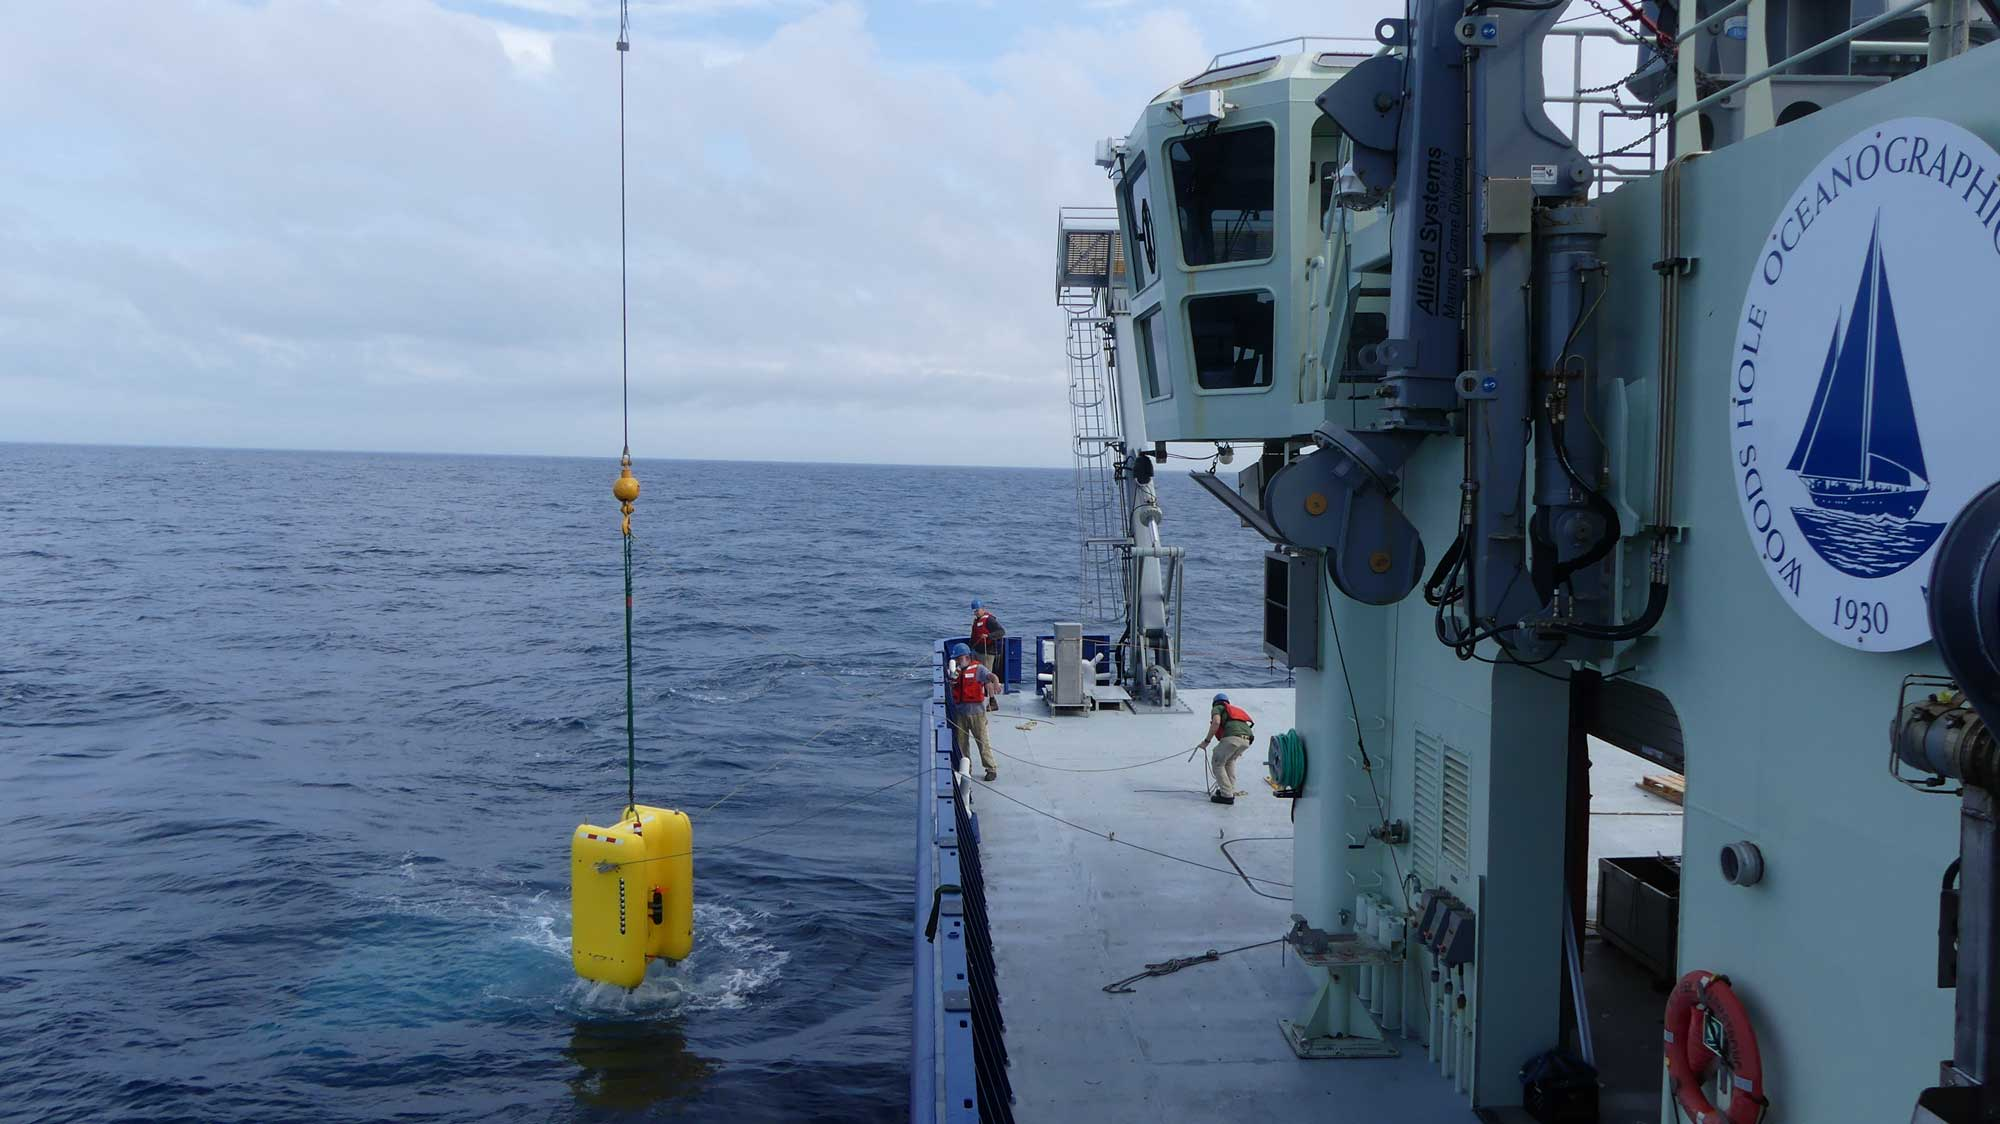 The crew aboard the R/V  Neil Armstrong  helps guide  Clio  into the water for tests at  sea. During the expedition , Clio  completed five dives, including two dives to 2,000  meters (1.2 miles), and filtered more than 1,000 liters (264 gallons) of se awater  from nine different depths. Image credit: Mak Saito, Woods Hole Oceanographic Institution